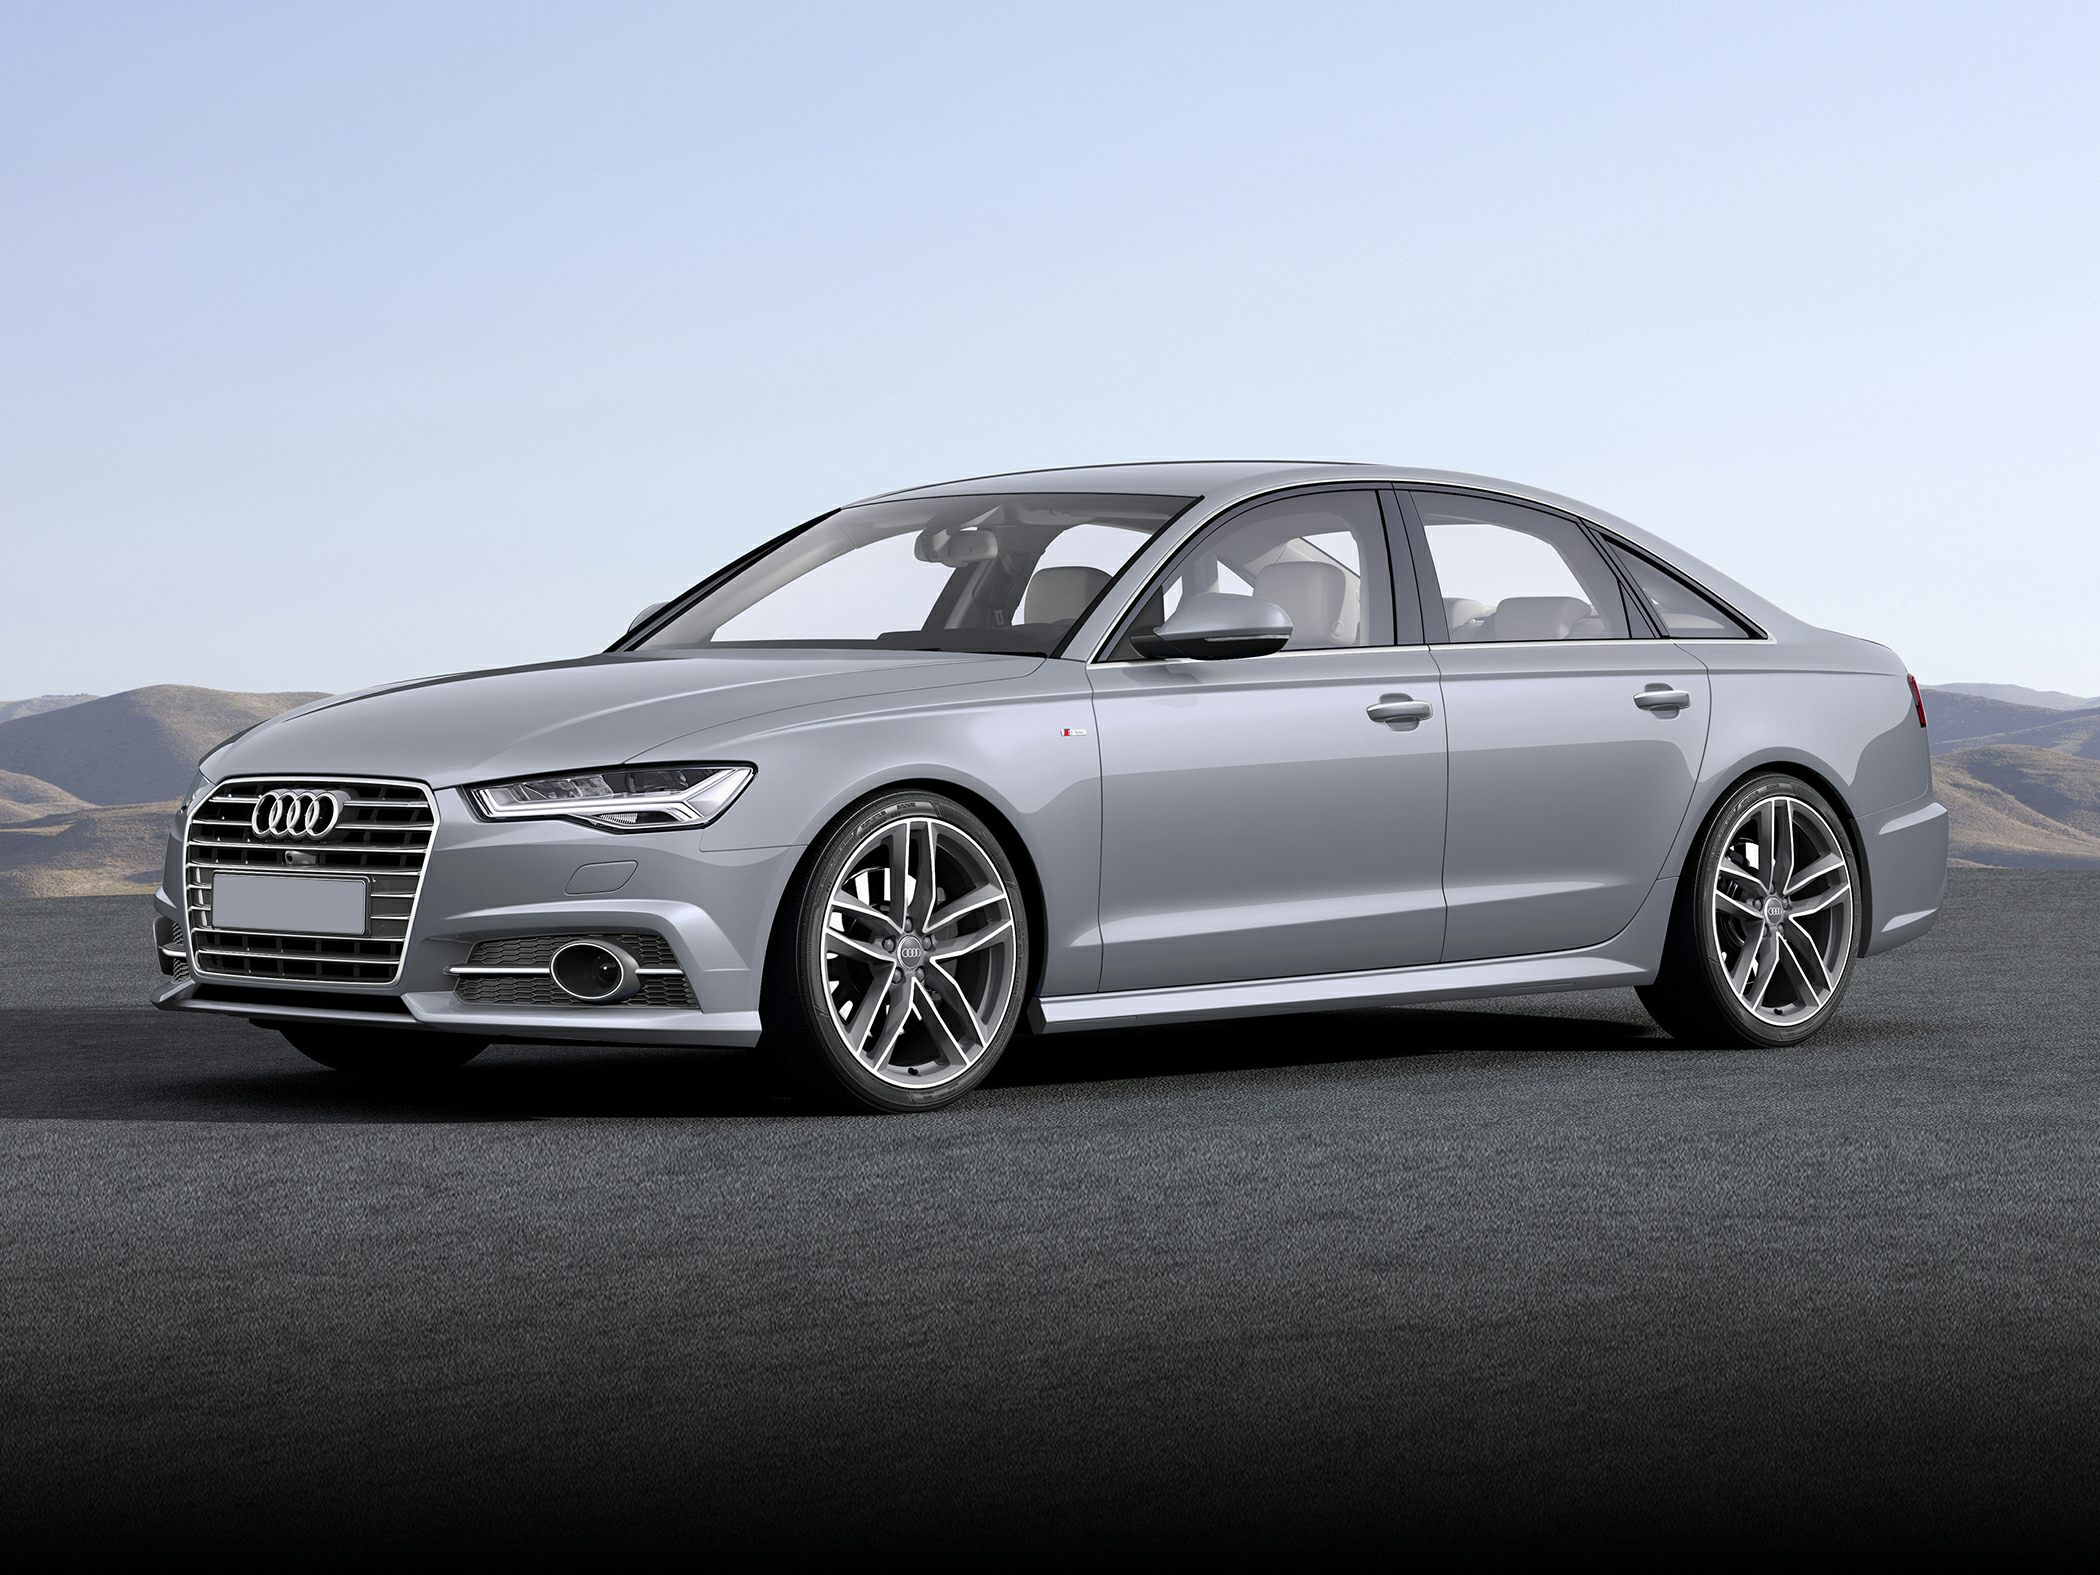 2018 Audi A6 Deals Prices Incentives Leases Overview Carsdirect